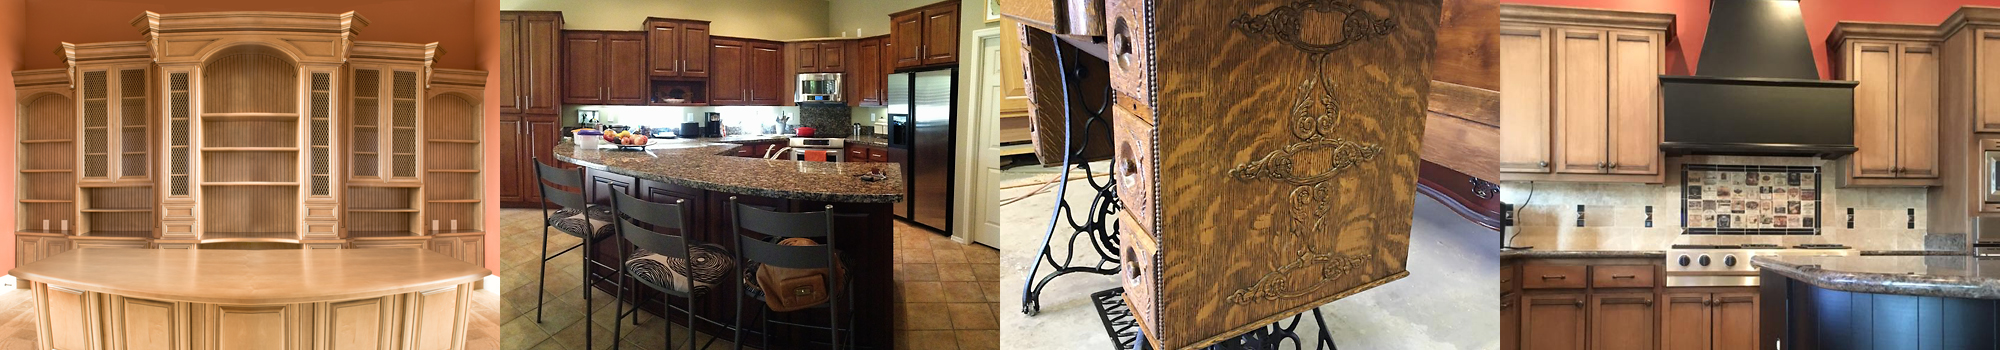 We Take Great Pride In Providing Personalized Furniture Refinishing  Services To Meet Each Of Your Specific Needs.